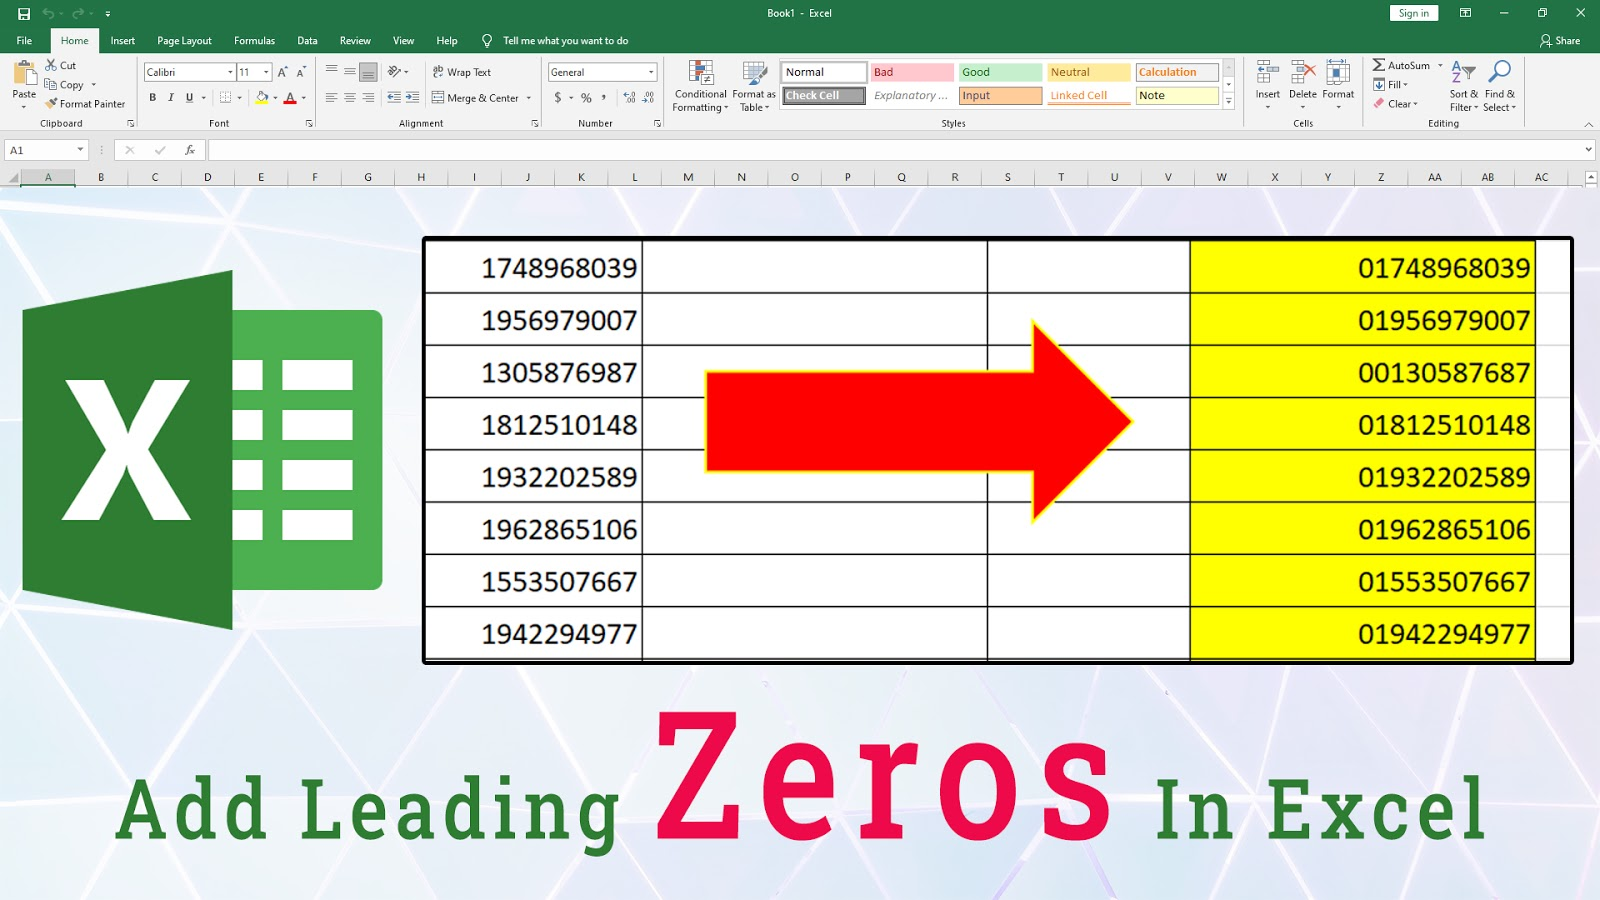 How to add 20 before Numerical values in Microsoft Excel